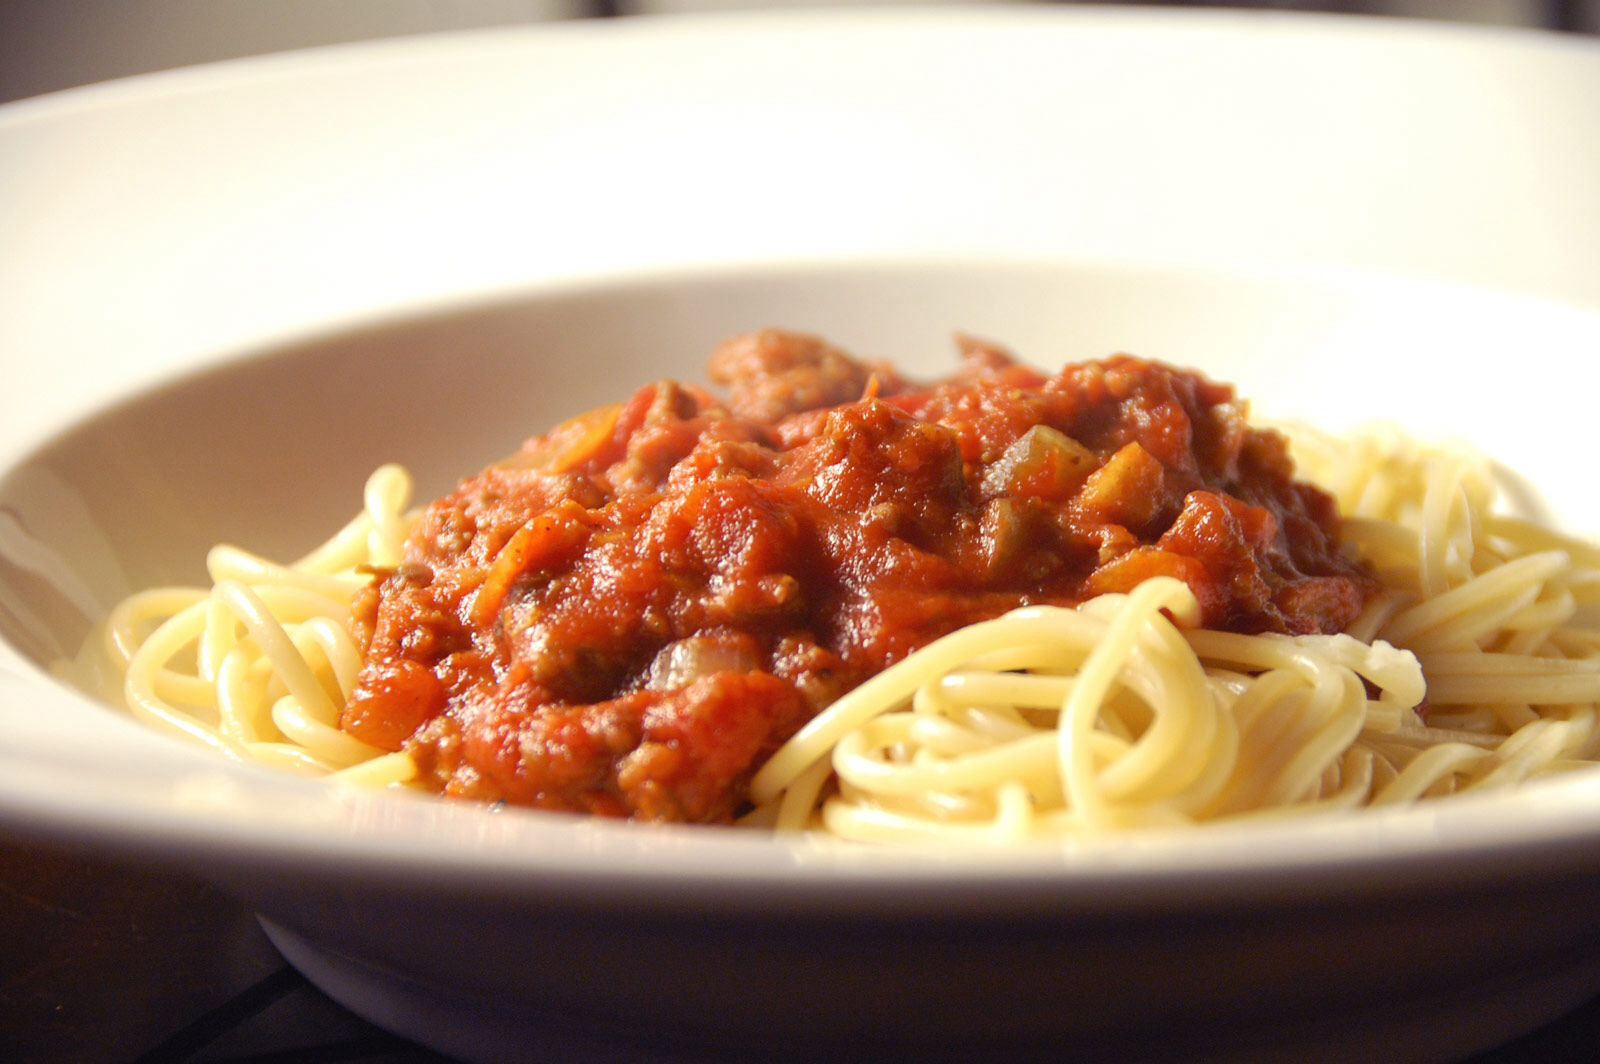 Italian spaghetti with meat sauce. | Food/Beverages | Pinterest